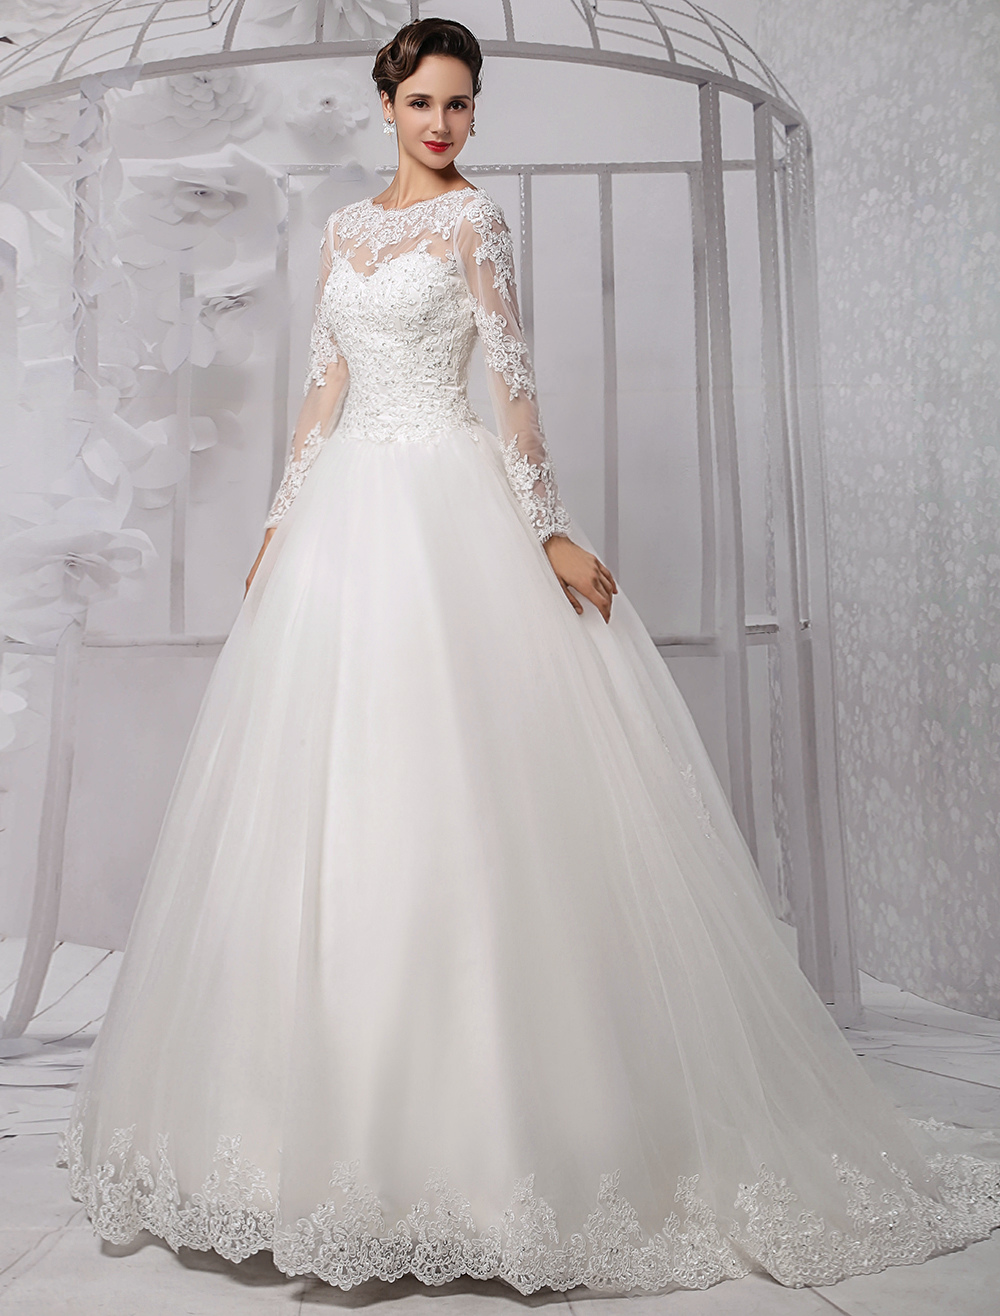 Wedding Dresses Ball Gown Long Sleeves Bridal Dress Lace Beading V Back Illusion Sweetheart Train Wedding Gown photo